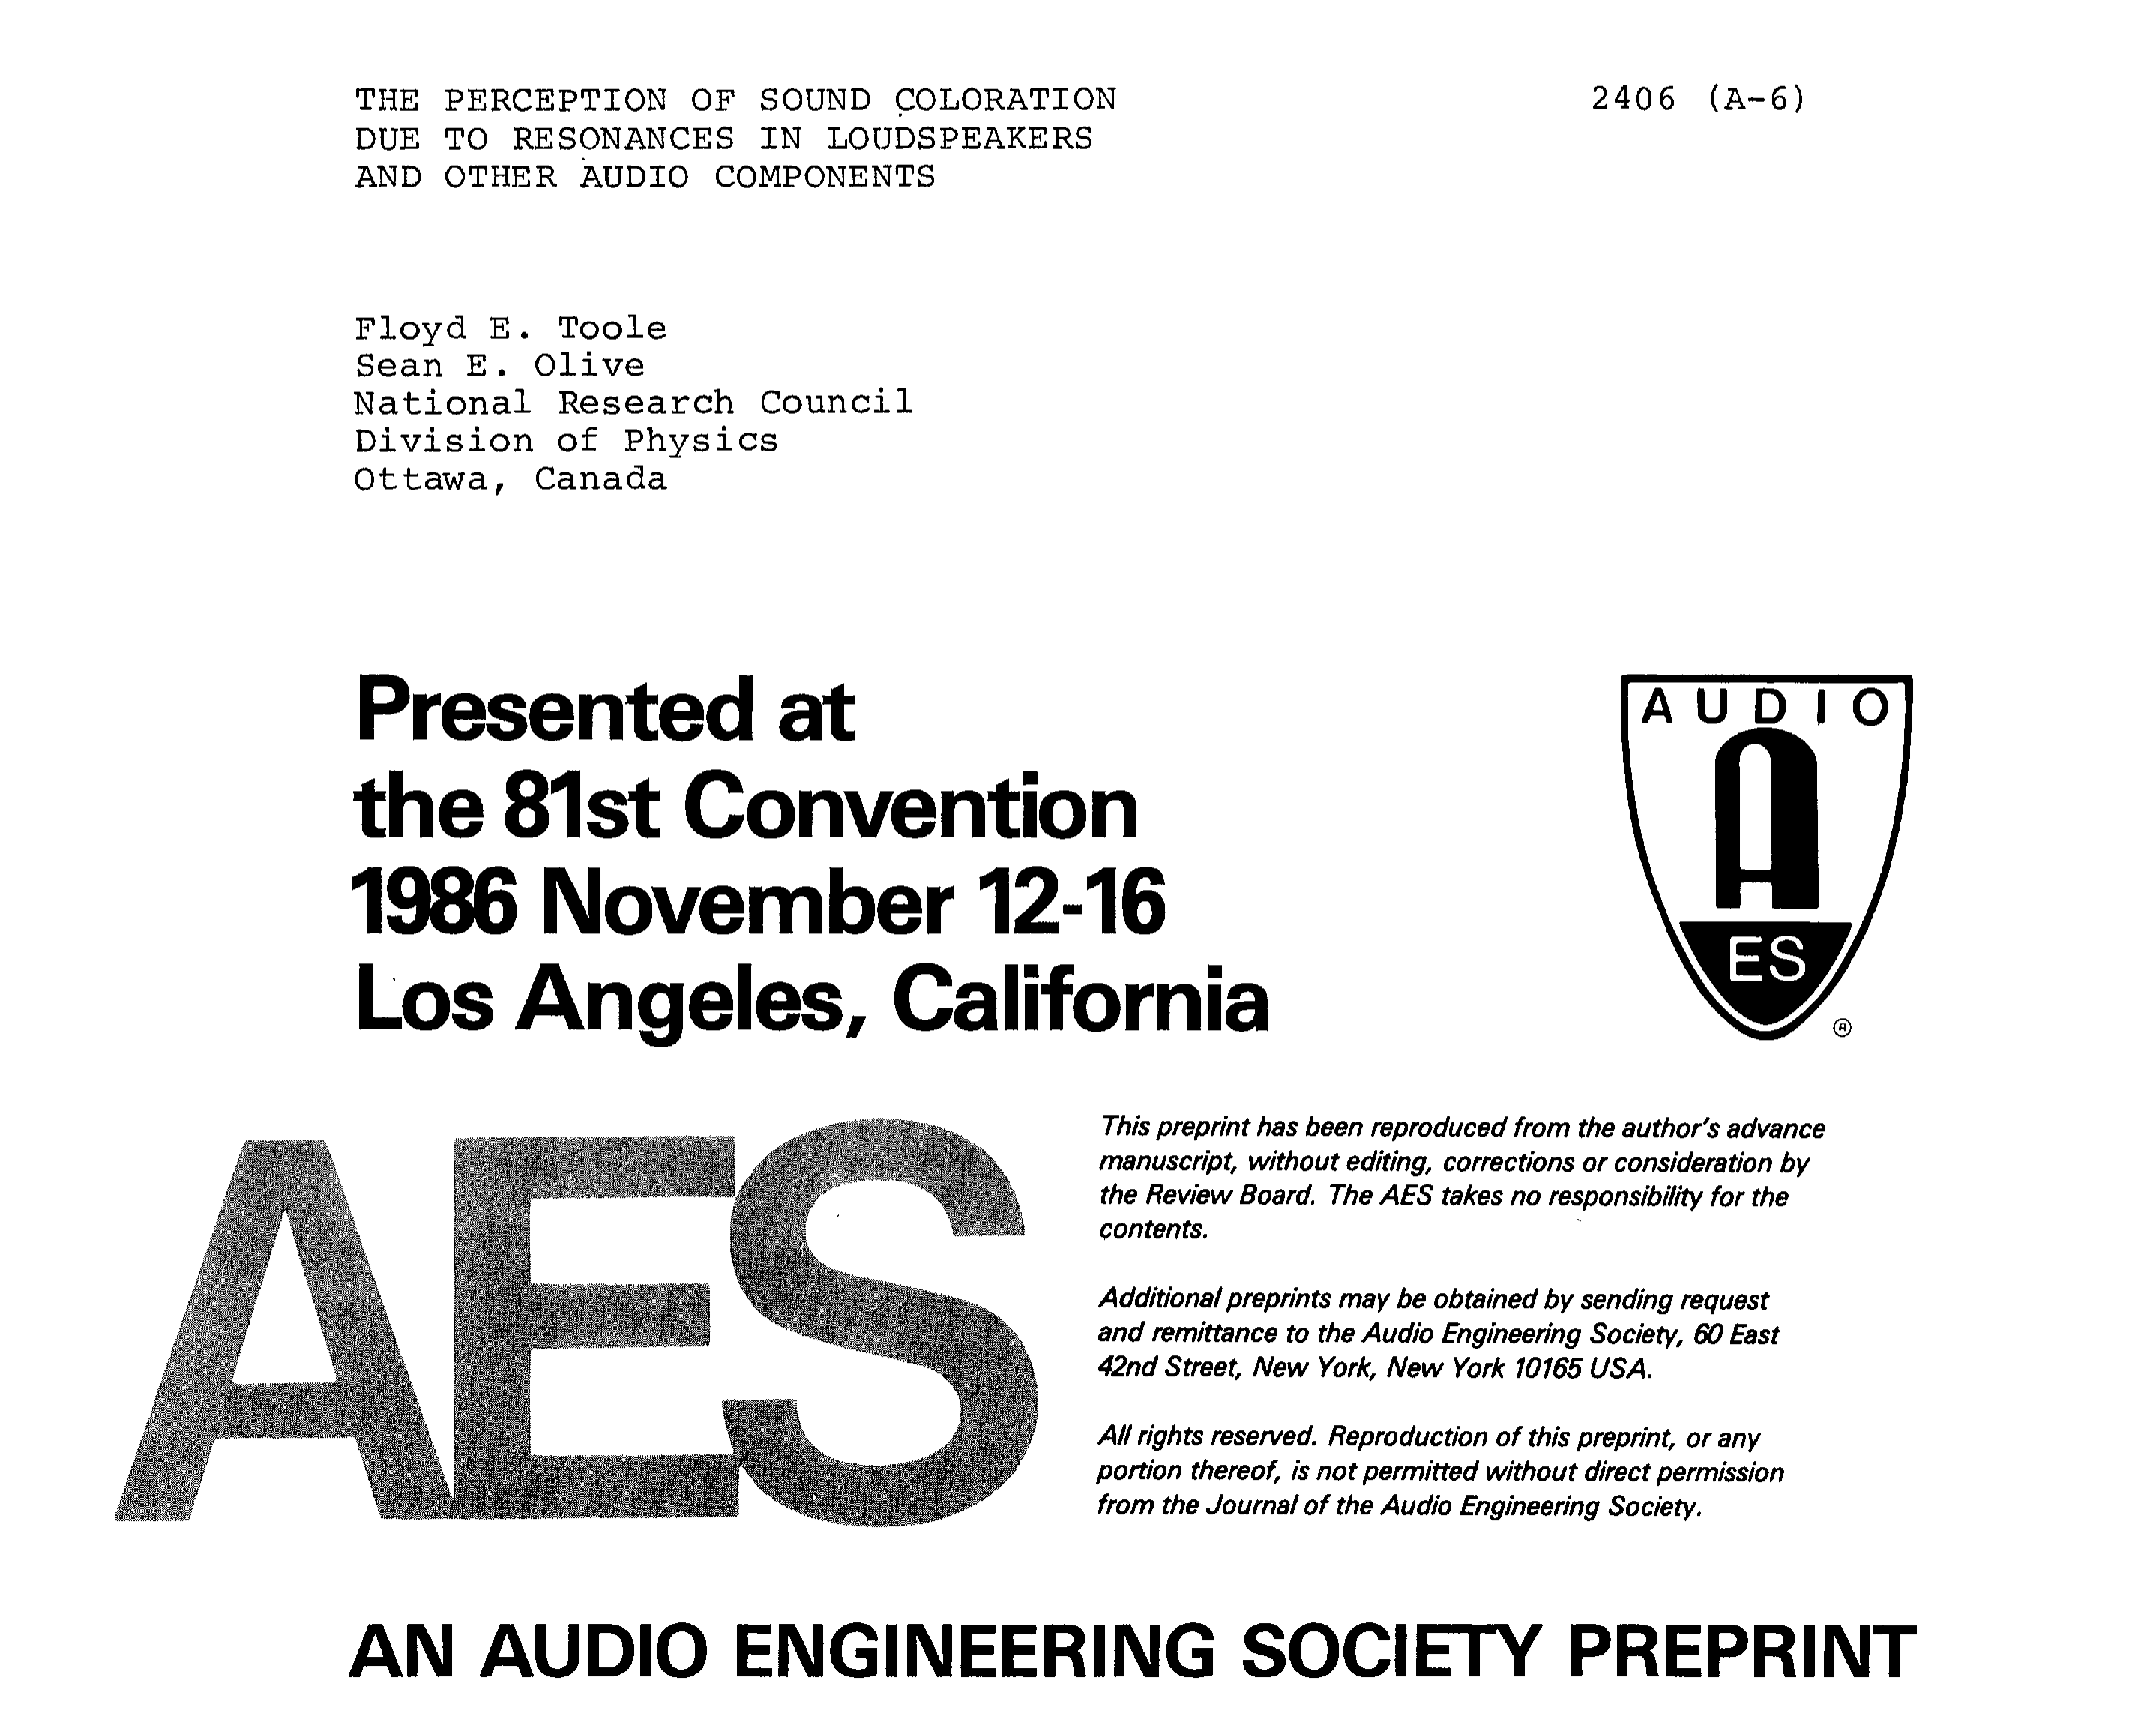 Aes E Library The Perception Of Sound Coloration Due To Resonances Low Distortion Audio Range Oscillator In Loudspeakers And Other Components